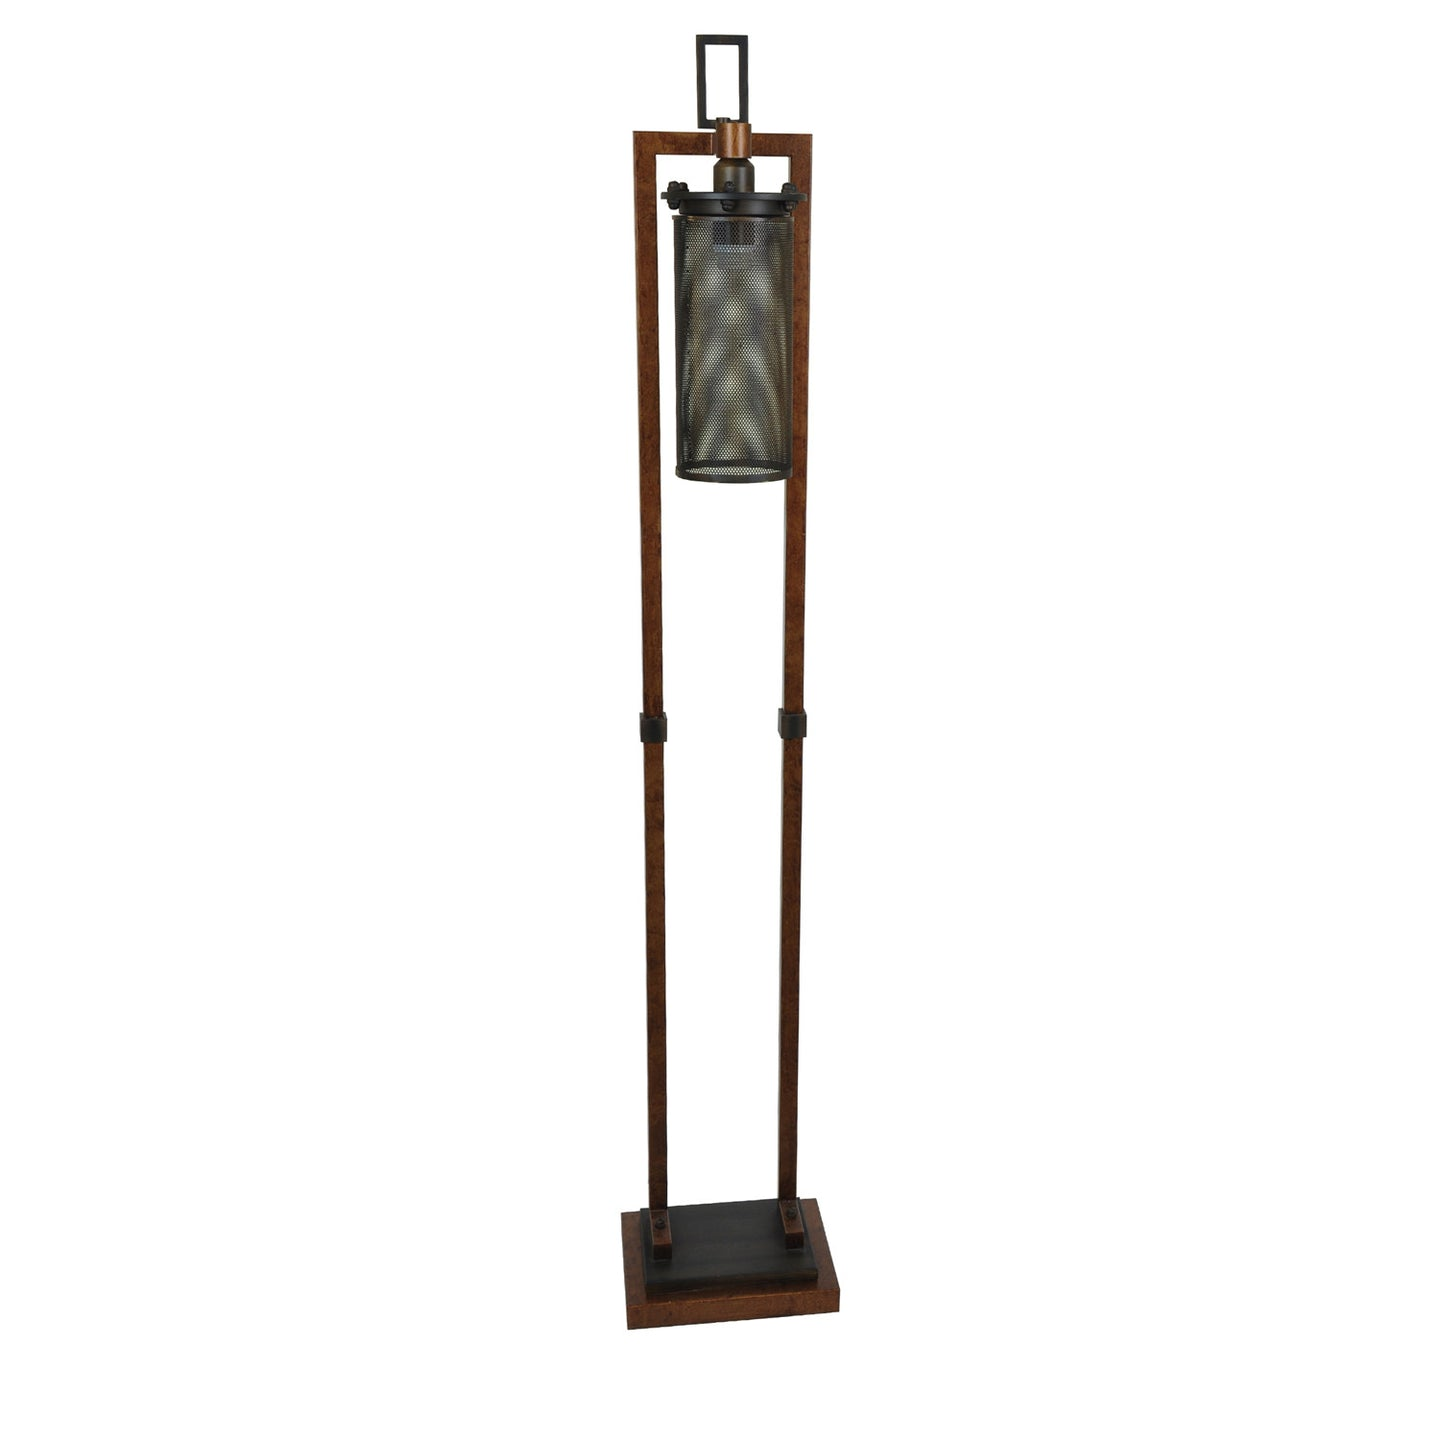 Gibson Floor Lamp - The Rustic Furniture Store